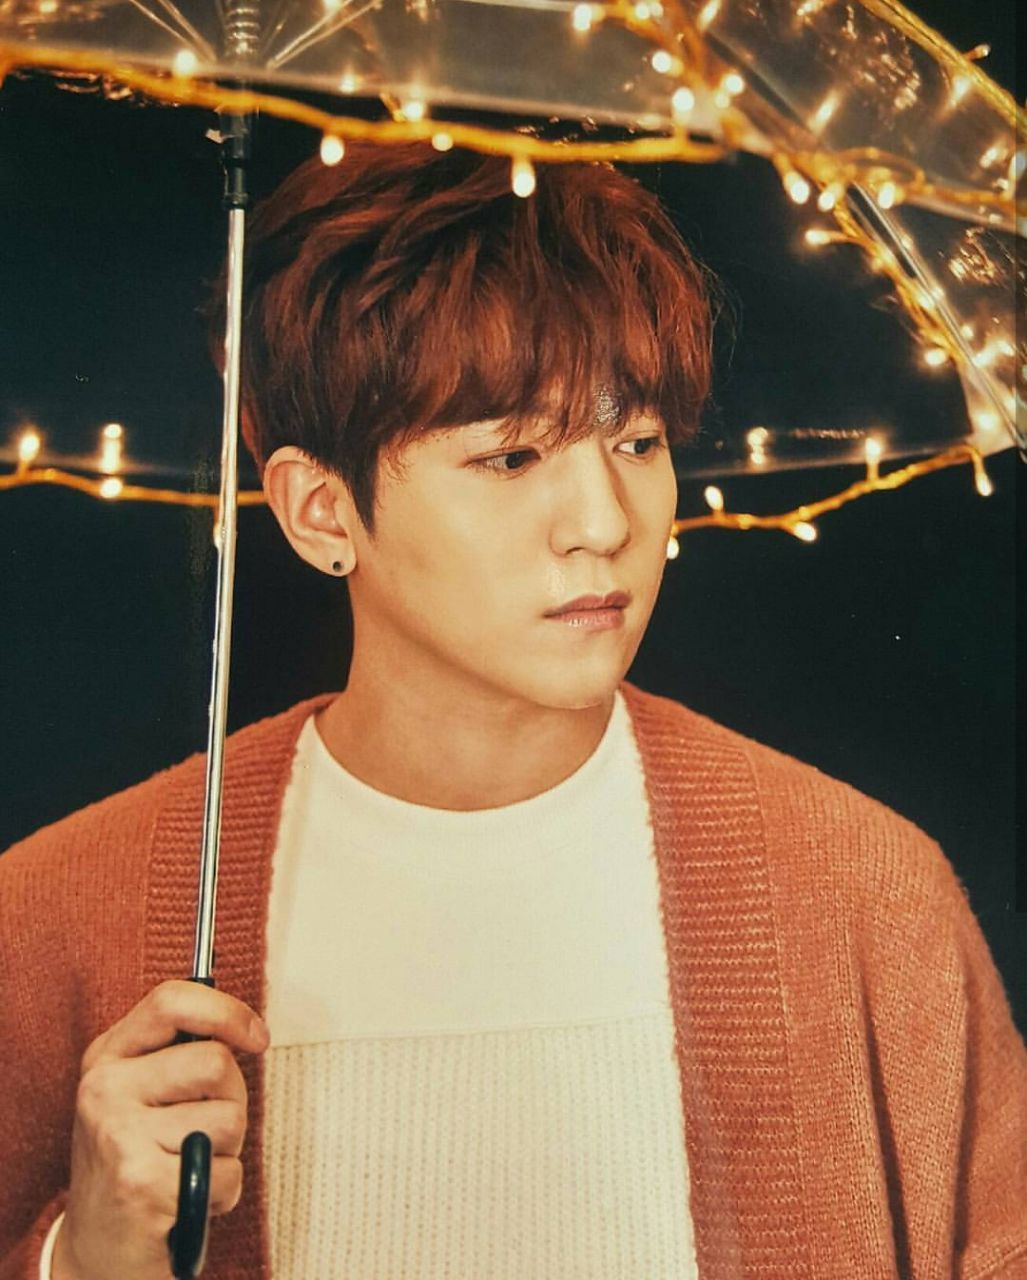 Sungjin Dang I Can Only Remember That His English Name Is Brian Edit The Power Of Google Day6 Park Sung Jin Photo Book